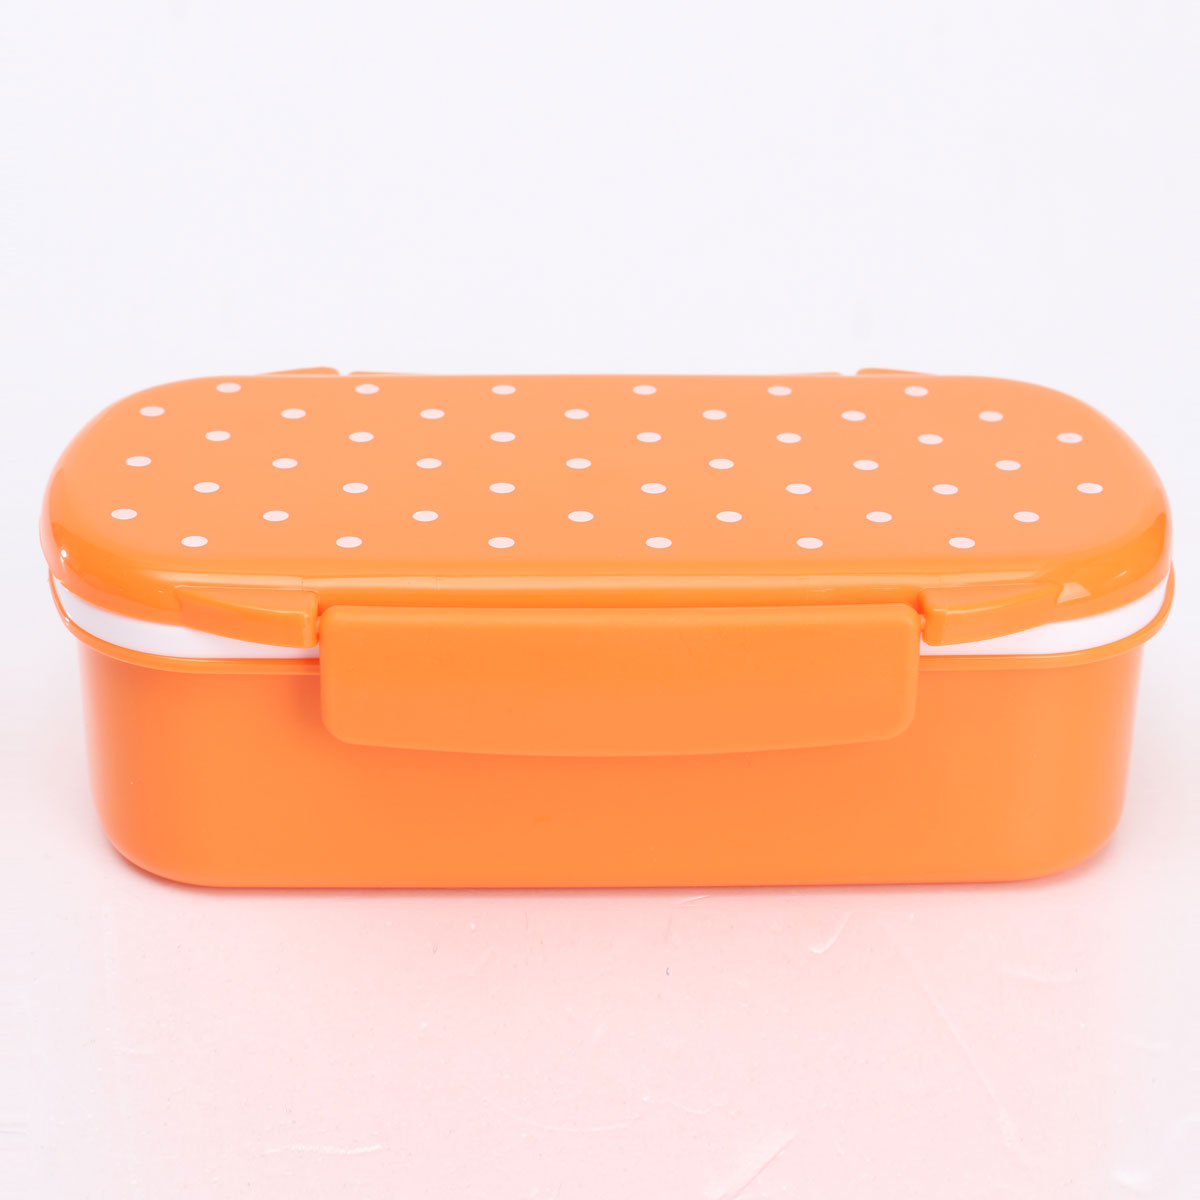 cute plastic lunch box food container storage box portable bento box spoon fork ebay. Black Bedroom Furniture Sets. Home Design Ideas